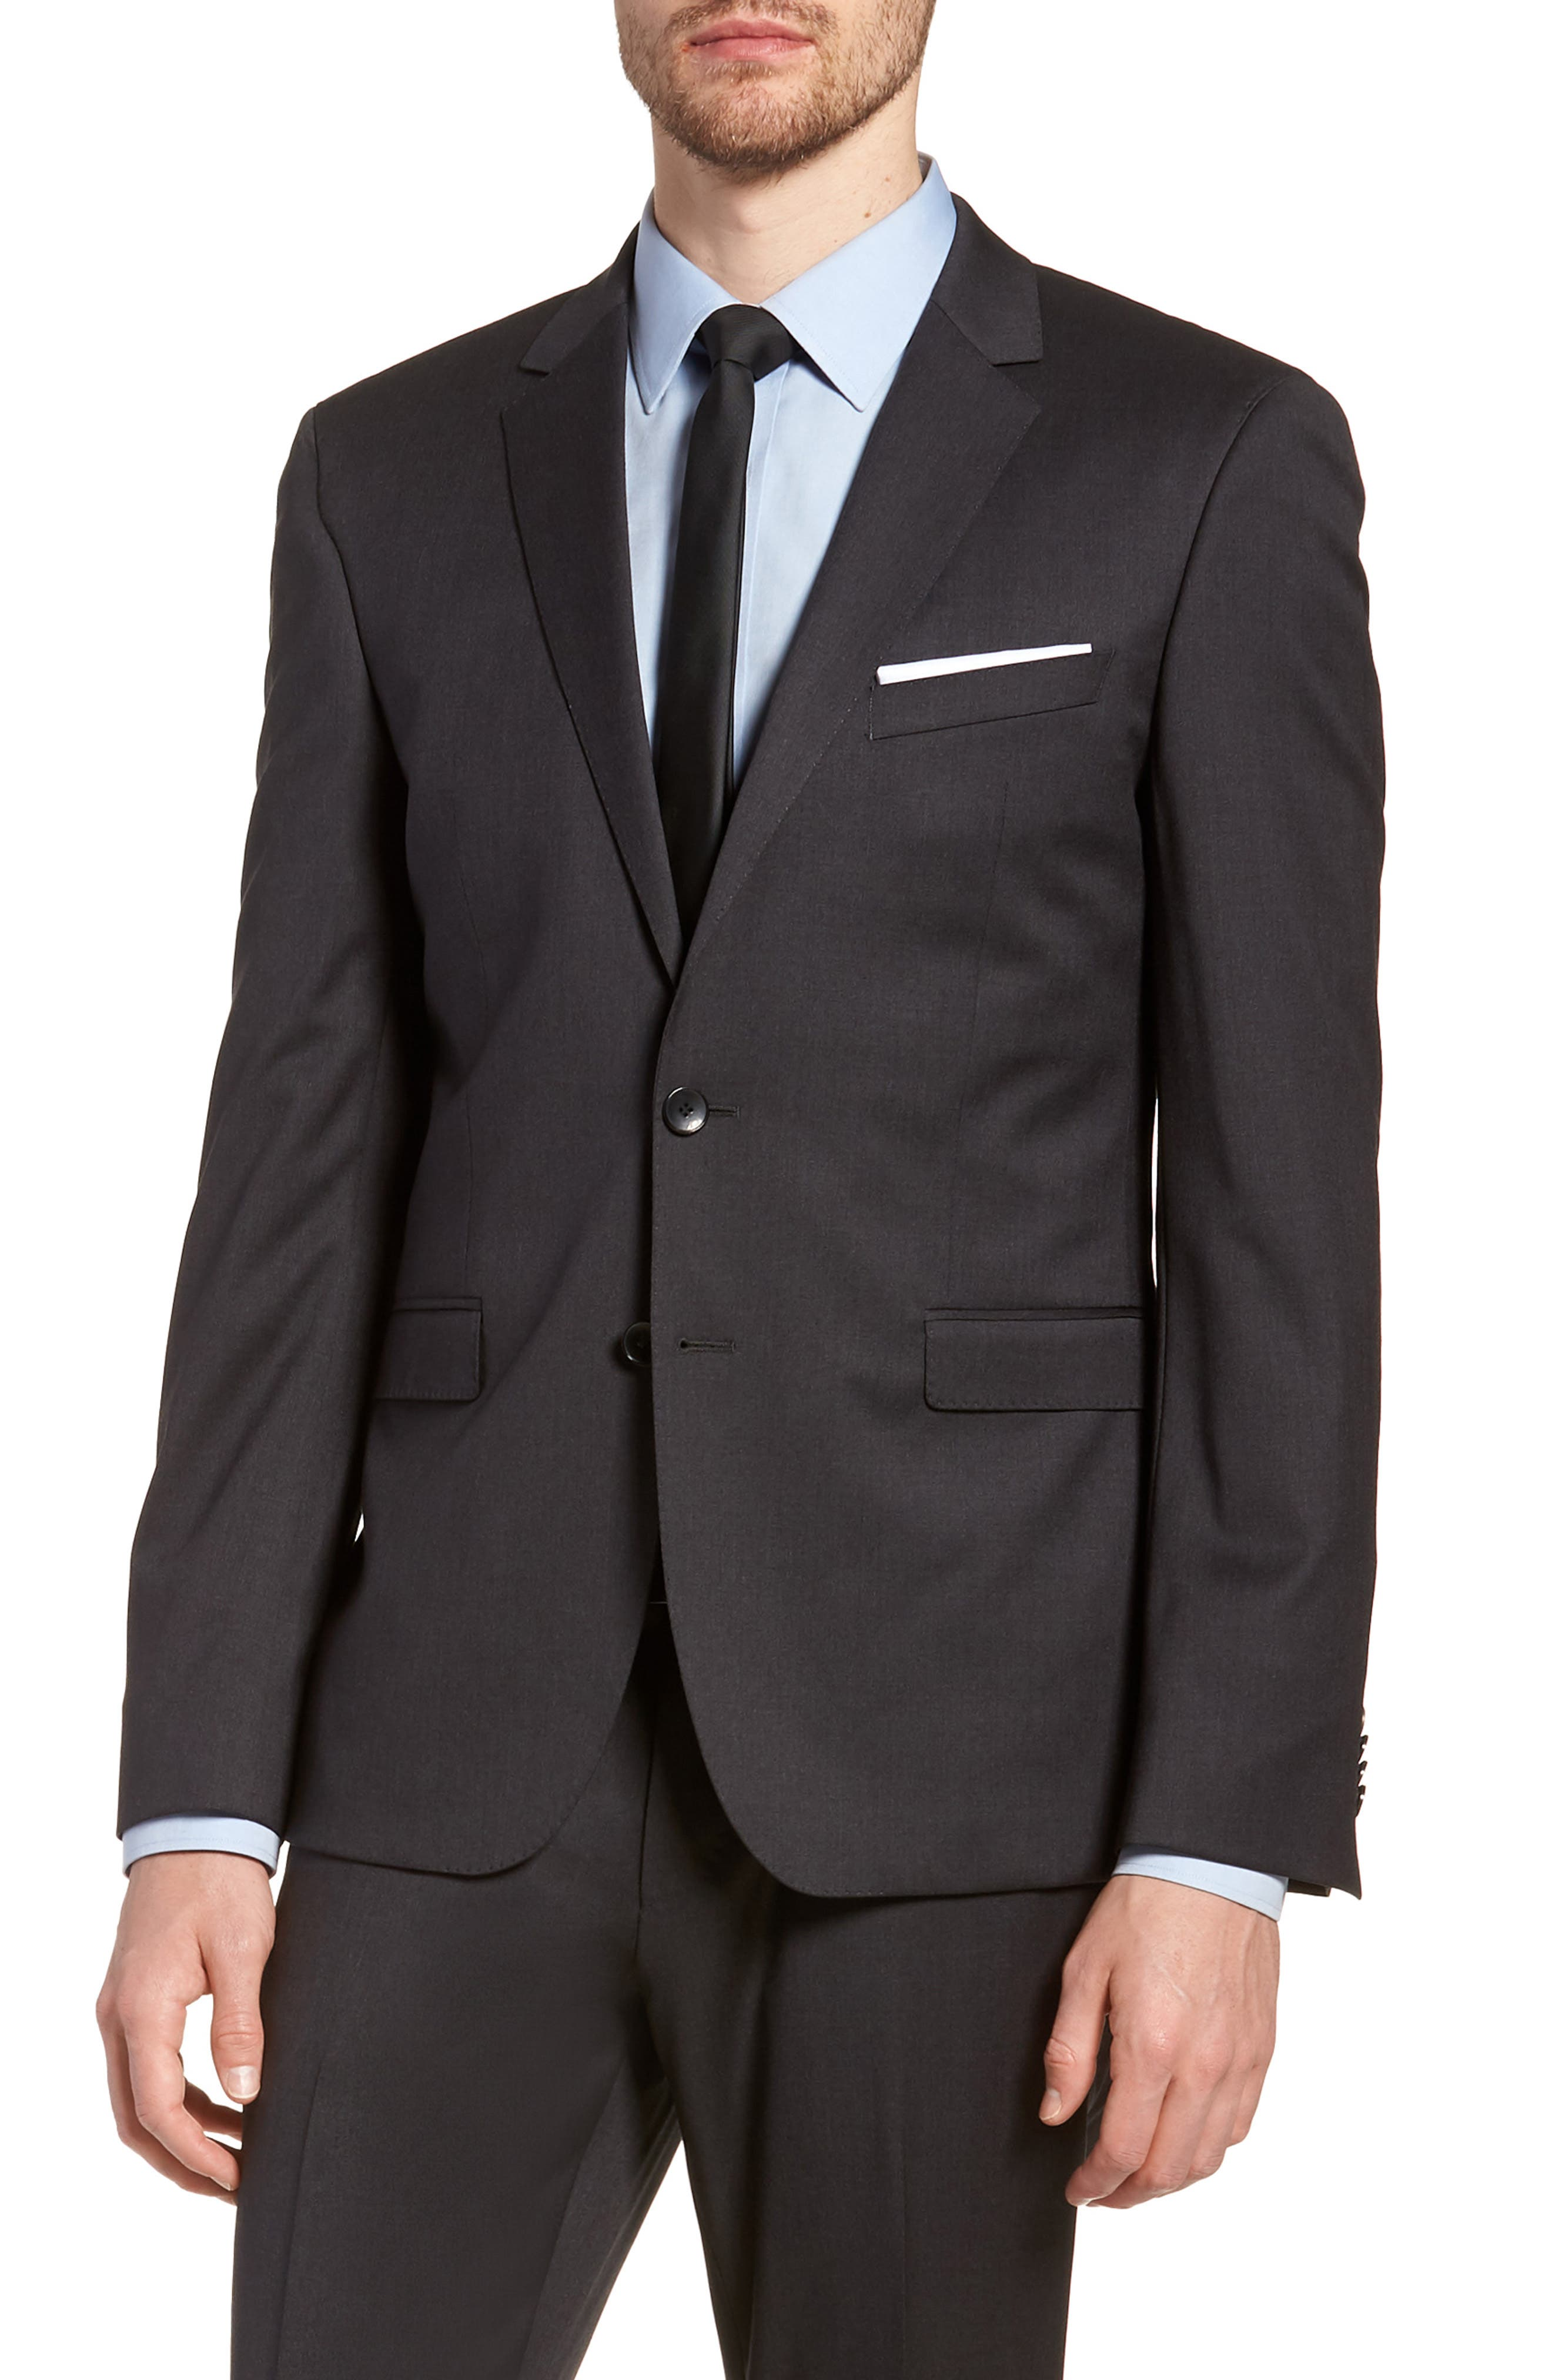 'Ryan/Win' Extra Trim Fit Solid Wool Suit,                             Alternate thumbnail 7, color,                             021